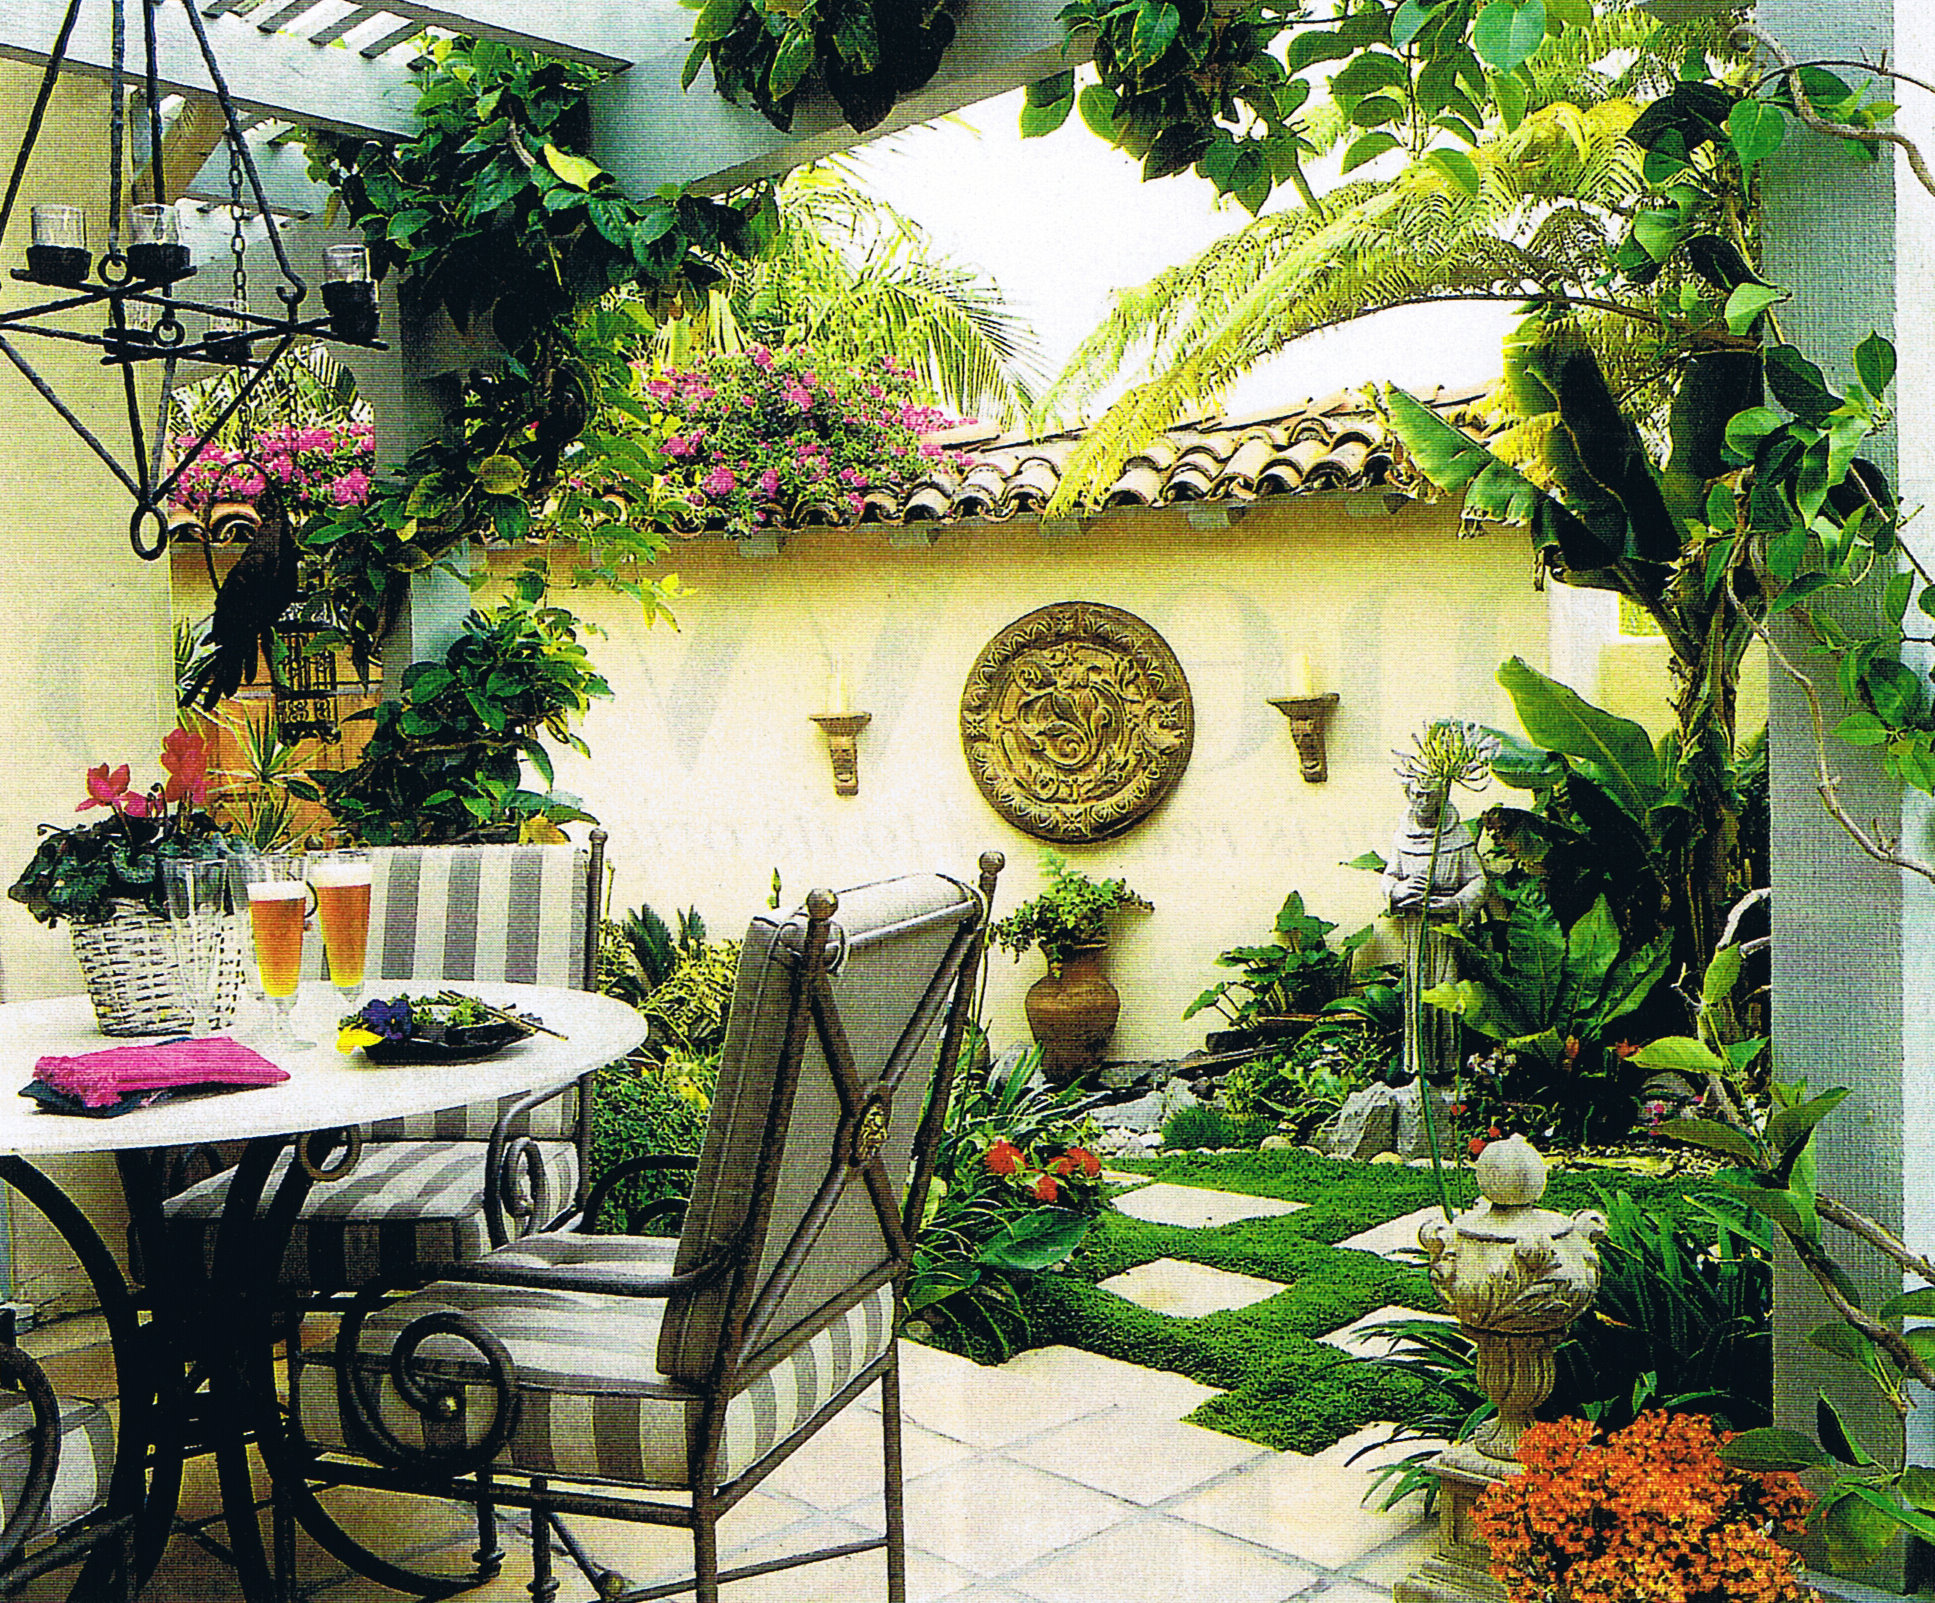 Awards for Best home garden design